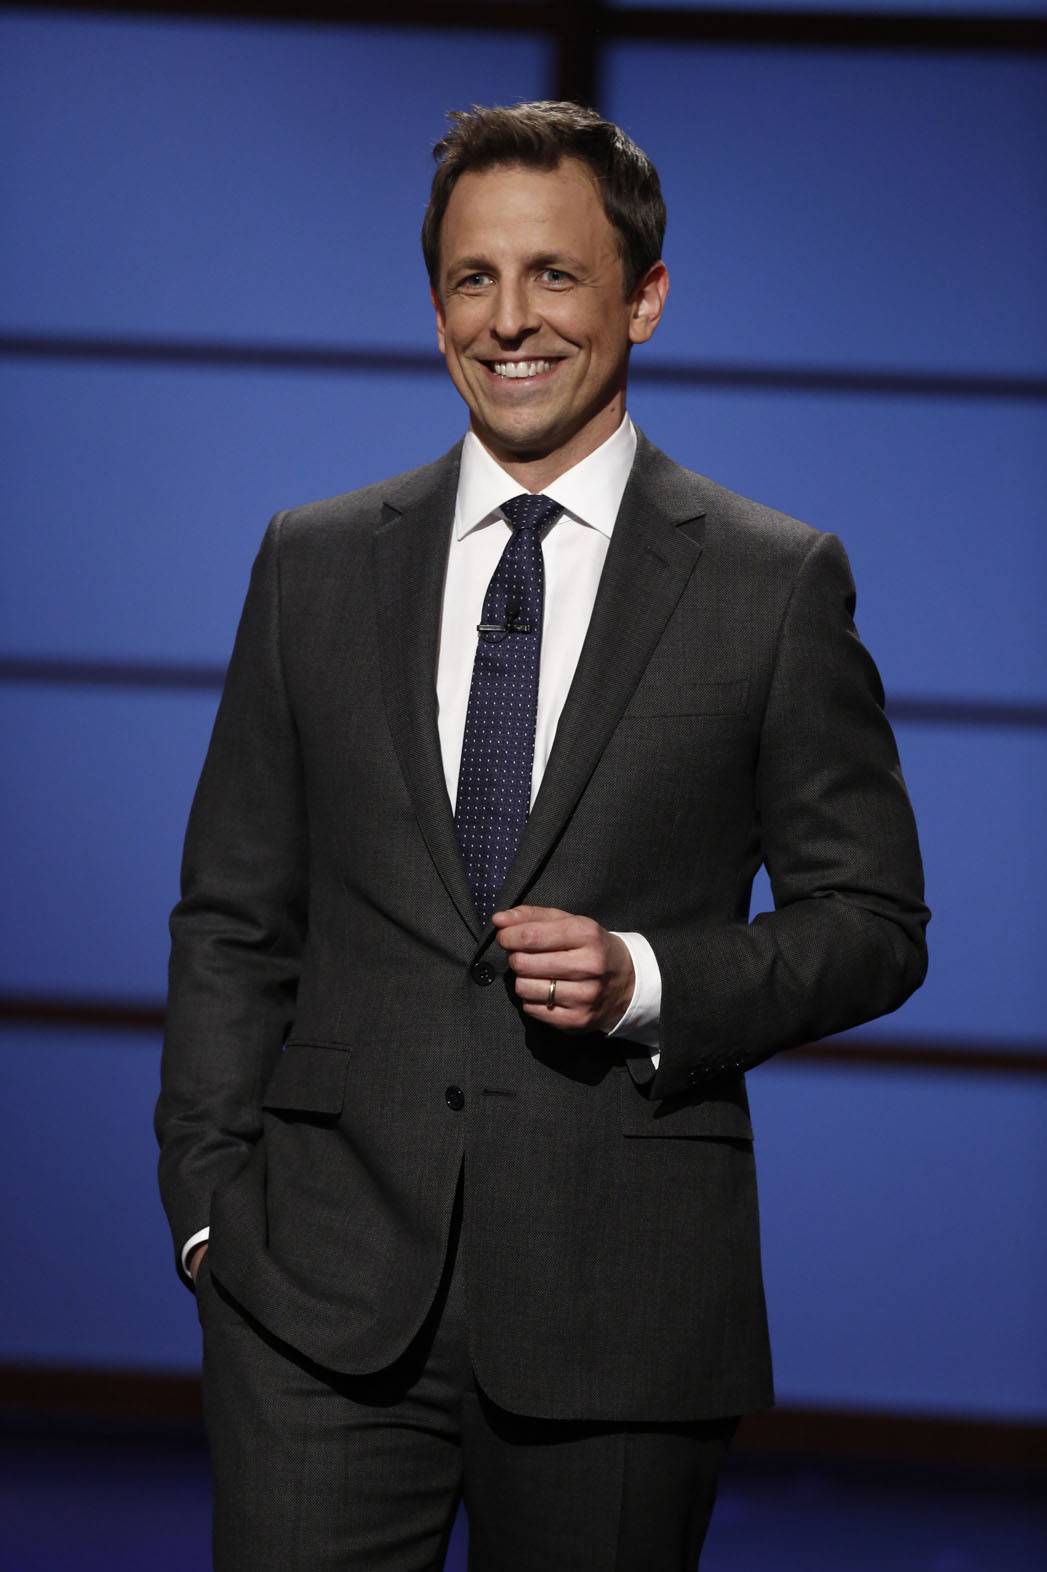 Late Night with Seth Meyers Monologue - P 2014